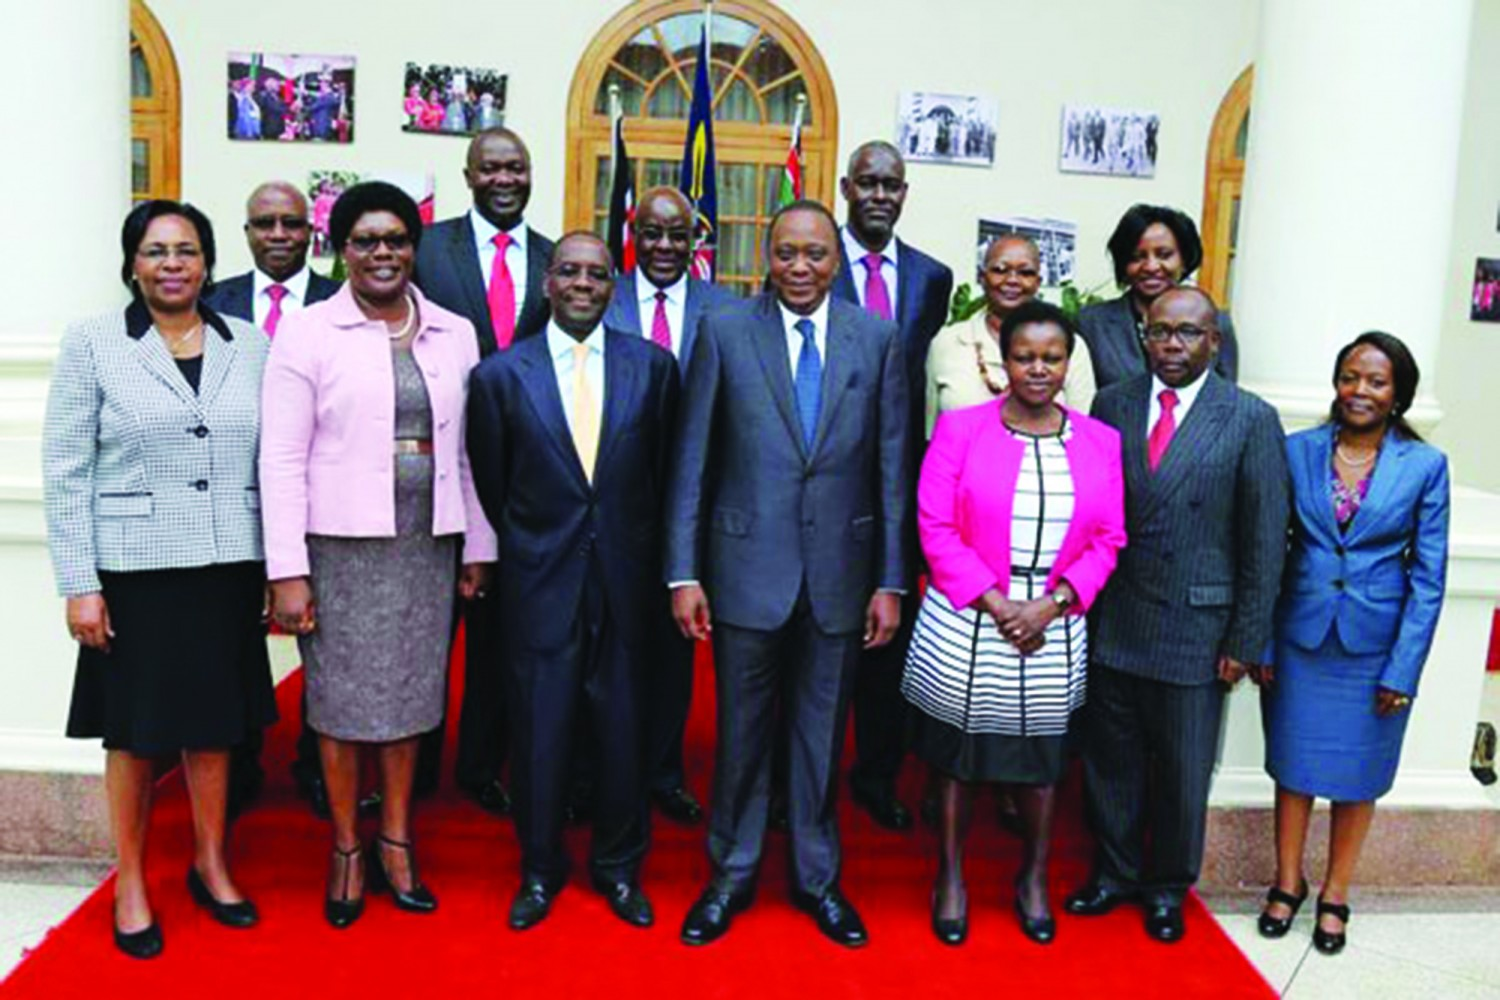 President Uhuru Kenyatta with members of the Judicial Service Commission led by Hon. Justice Dr. Willy M. Mutunga, SC, Chairman, JSC when they paid him a courtesy call at State House, Nairobi.